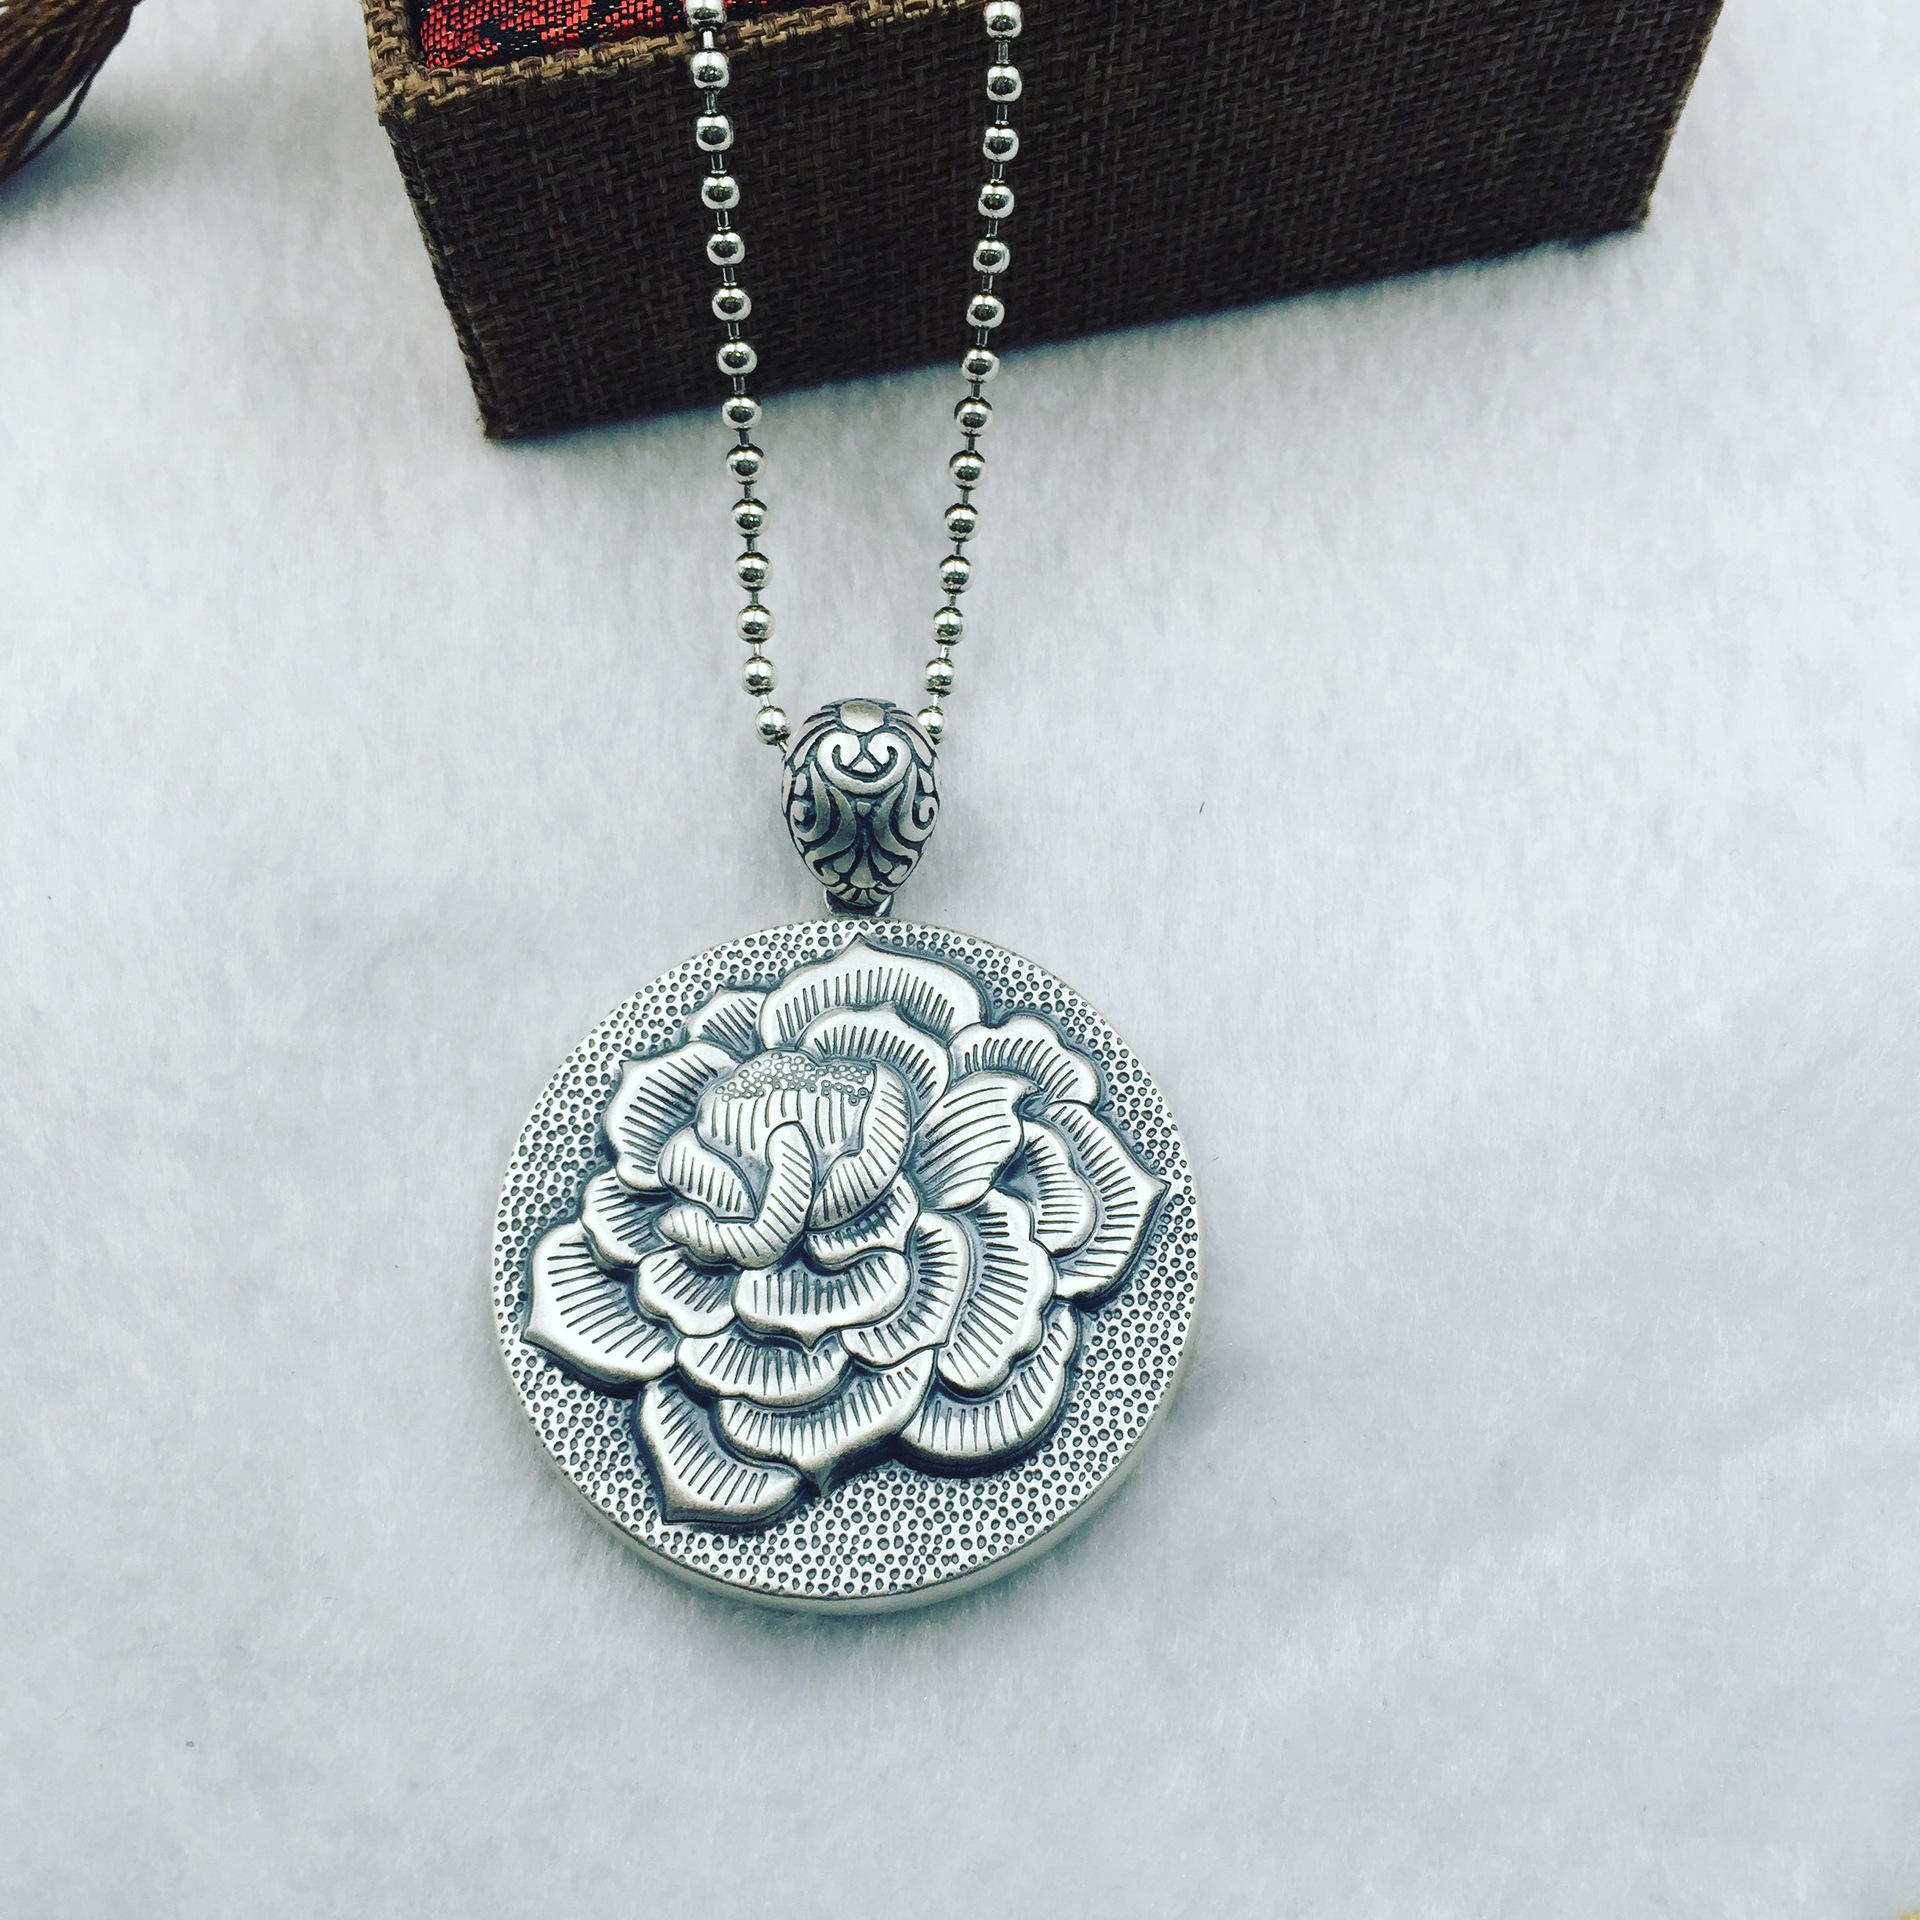 The ancient Thai S990 foot big peony card intime Silver Round Silver Pendant Pendant Chain sweater factory directThe ancient Thai S990 foot big peony card intime Silver Round Silver Pendant Pendant Chain sweater factory direct